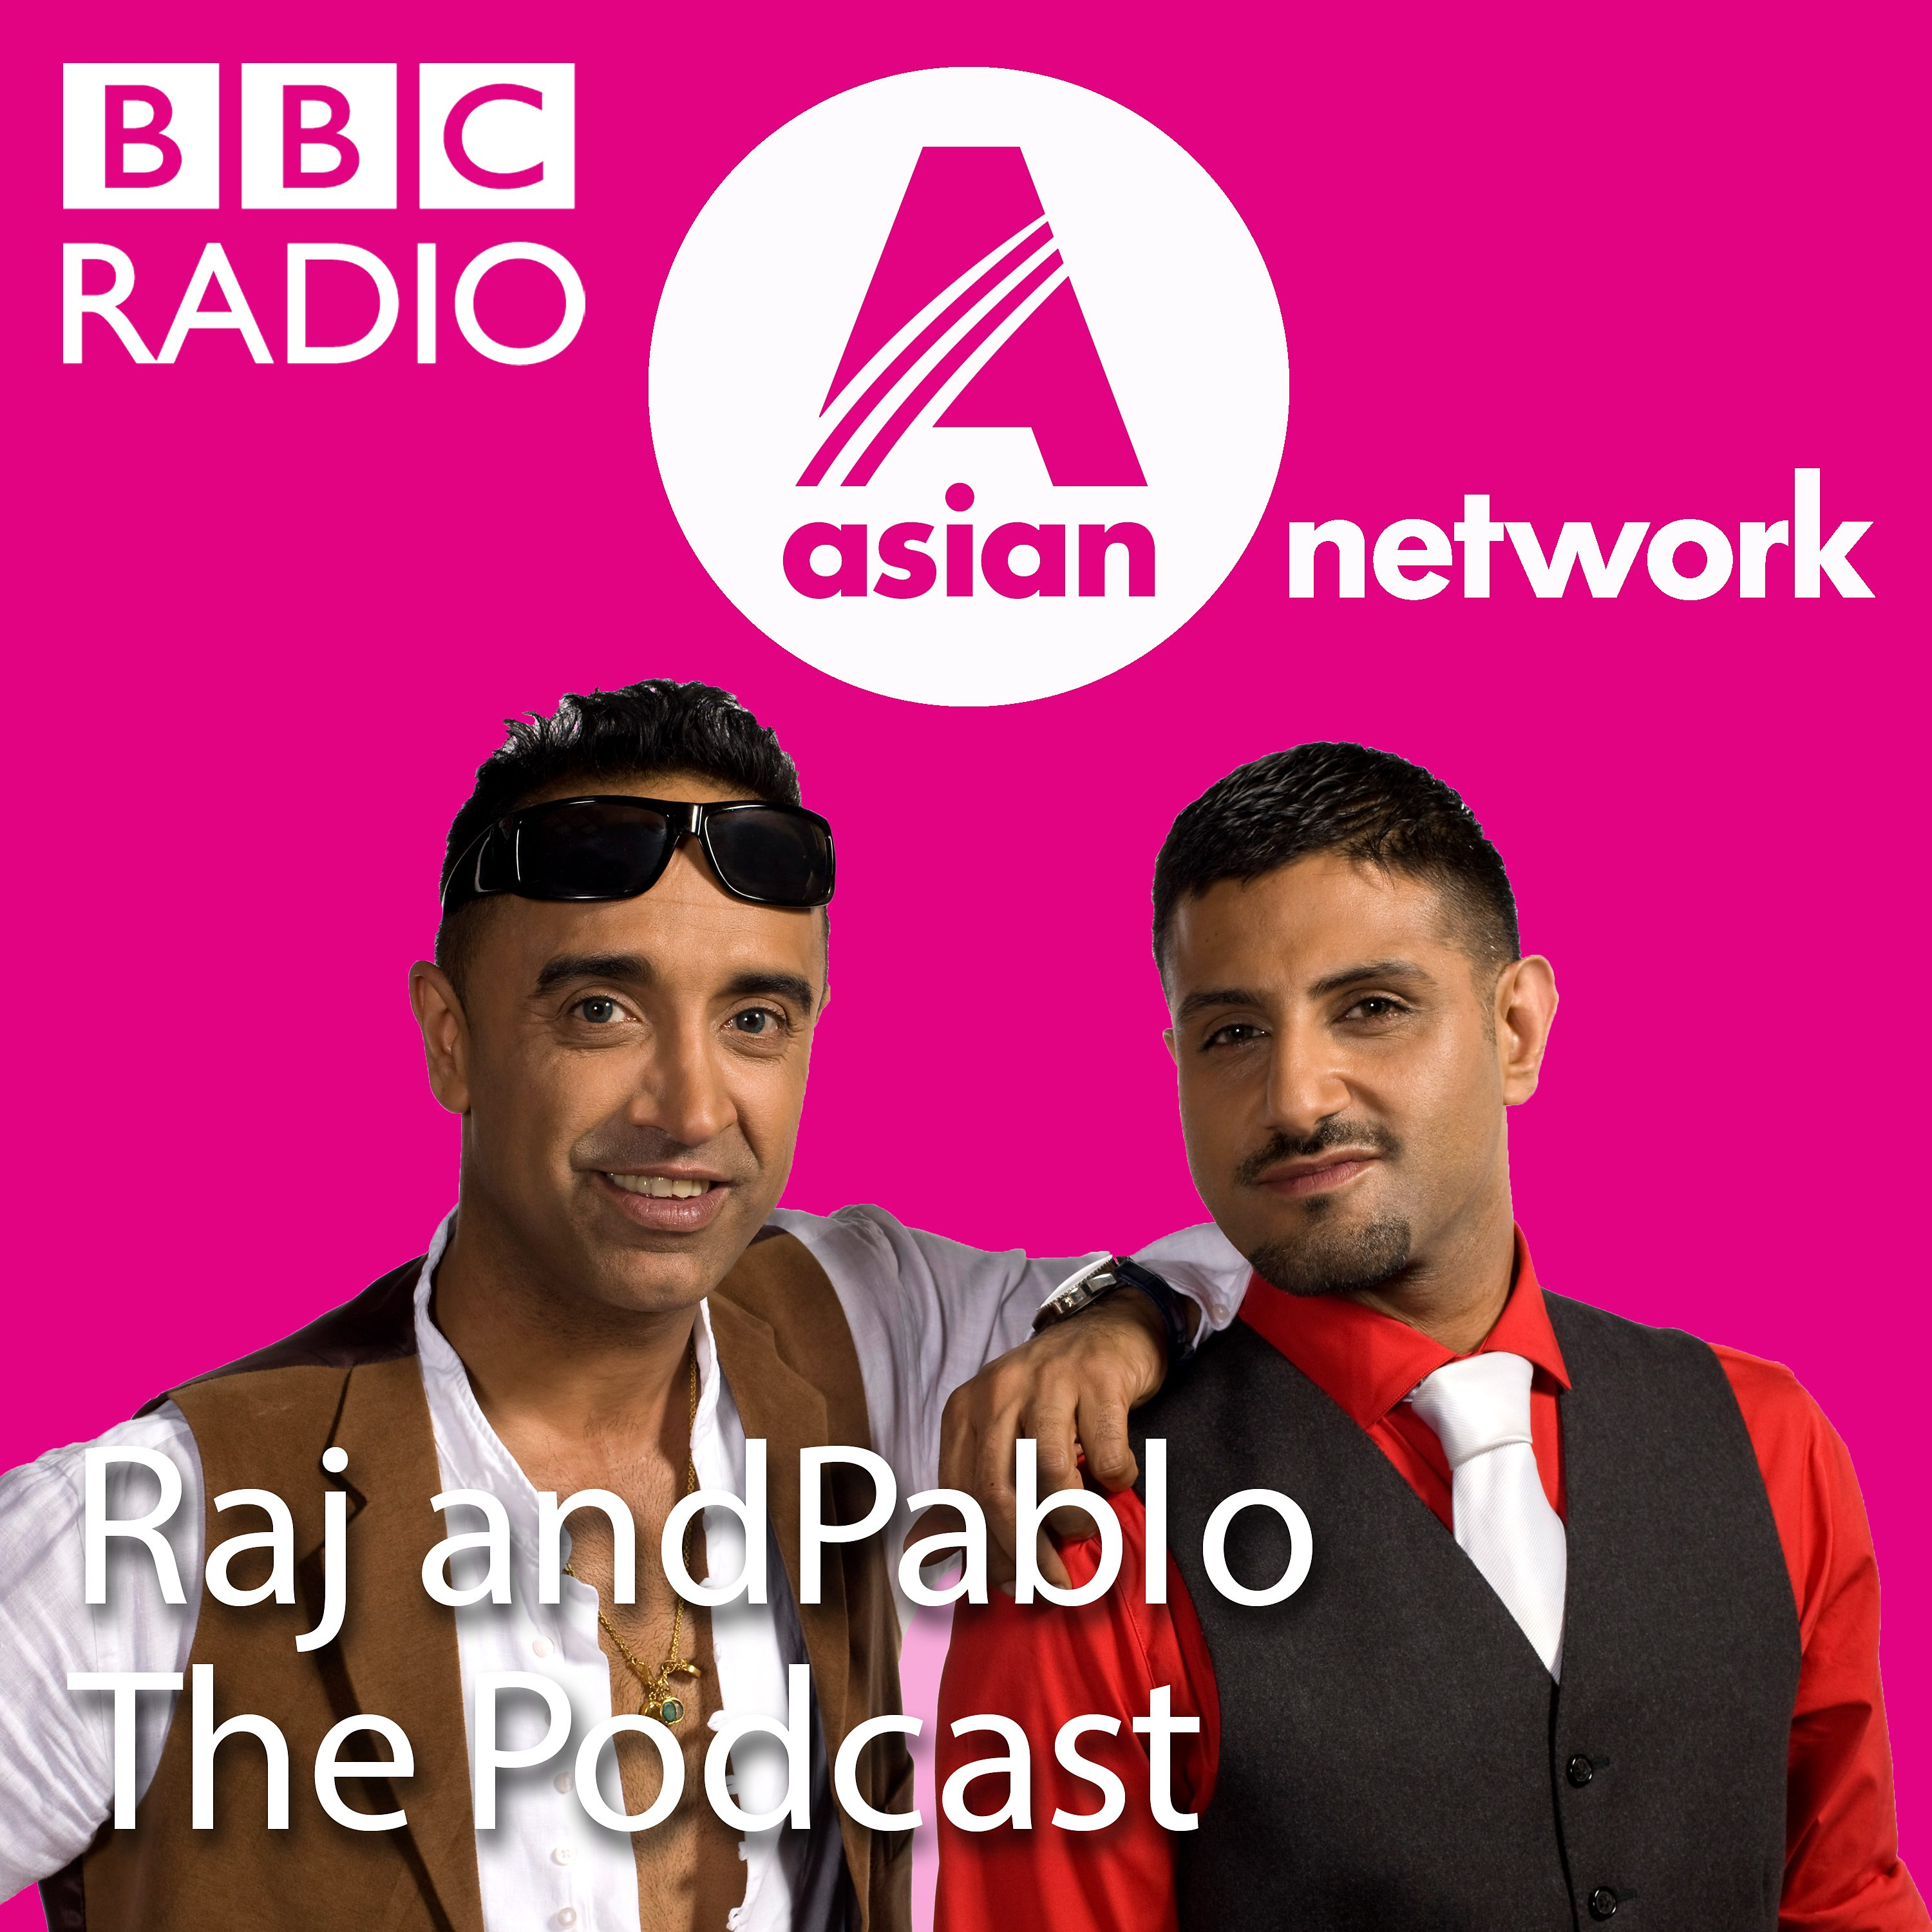 Raj and Pablo: The Podcast